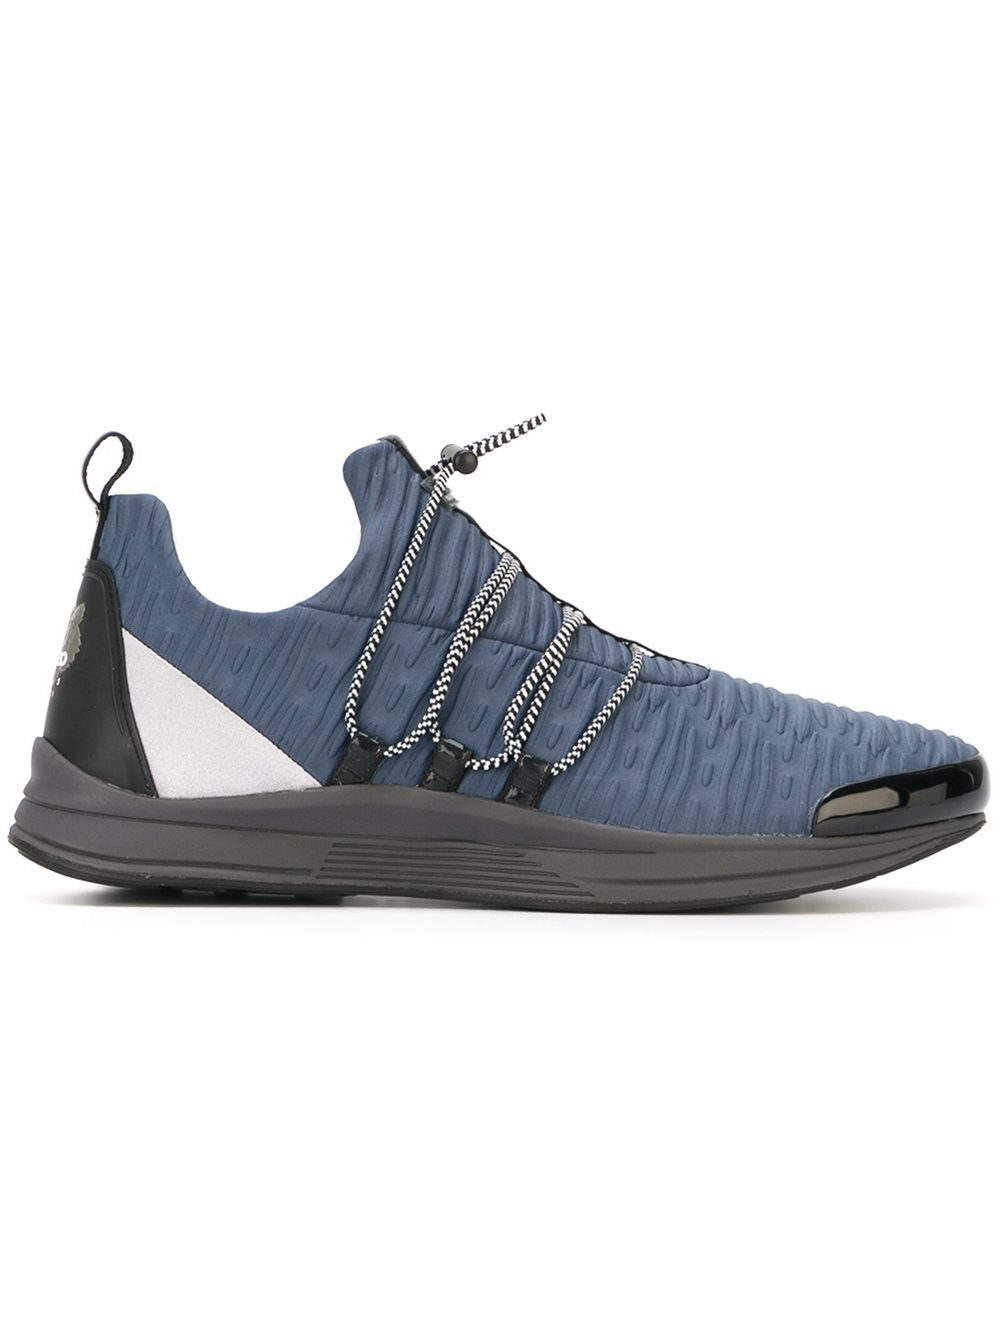 9bc6b414 KENZO 'ozon' Sneakers in Blue for Men - Lyst